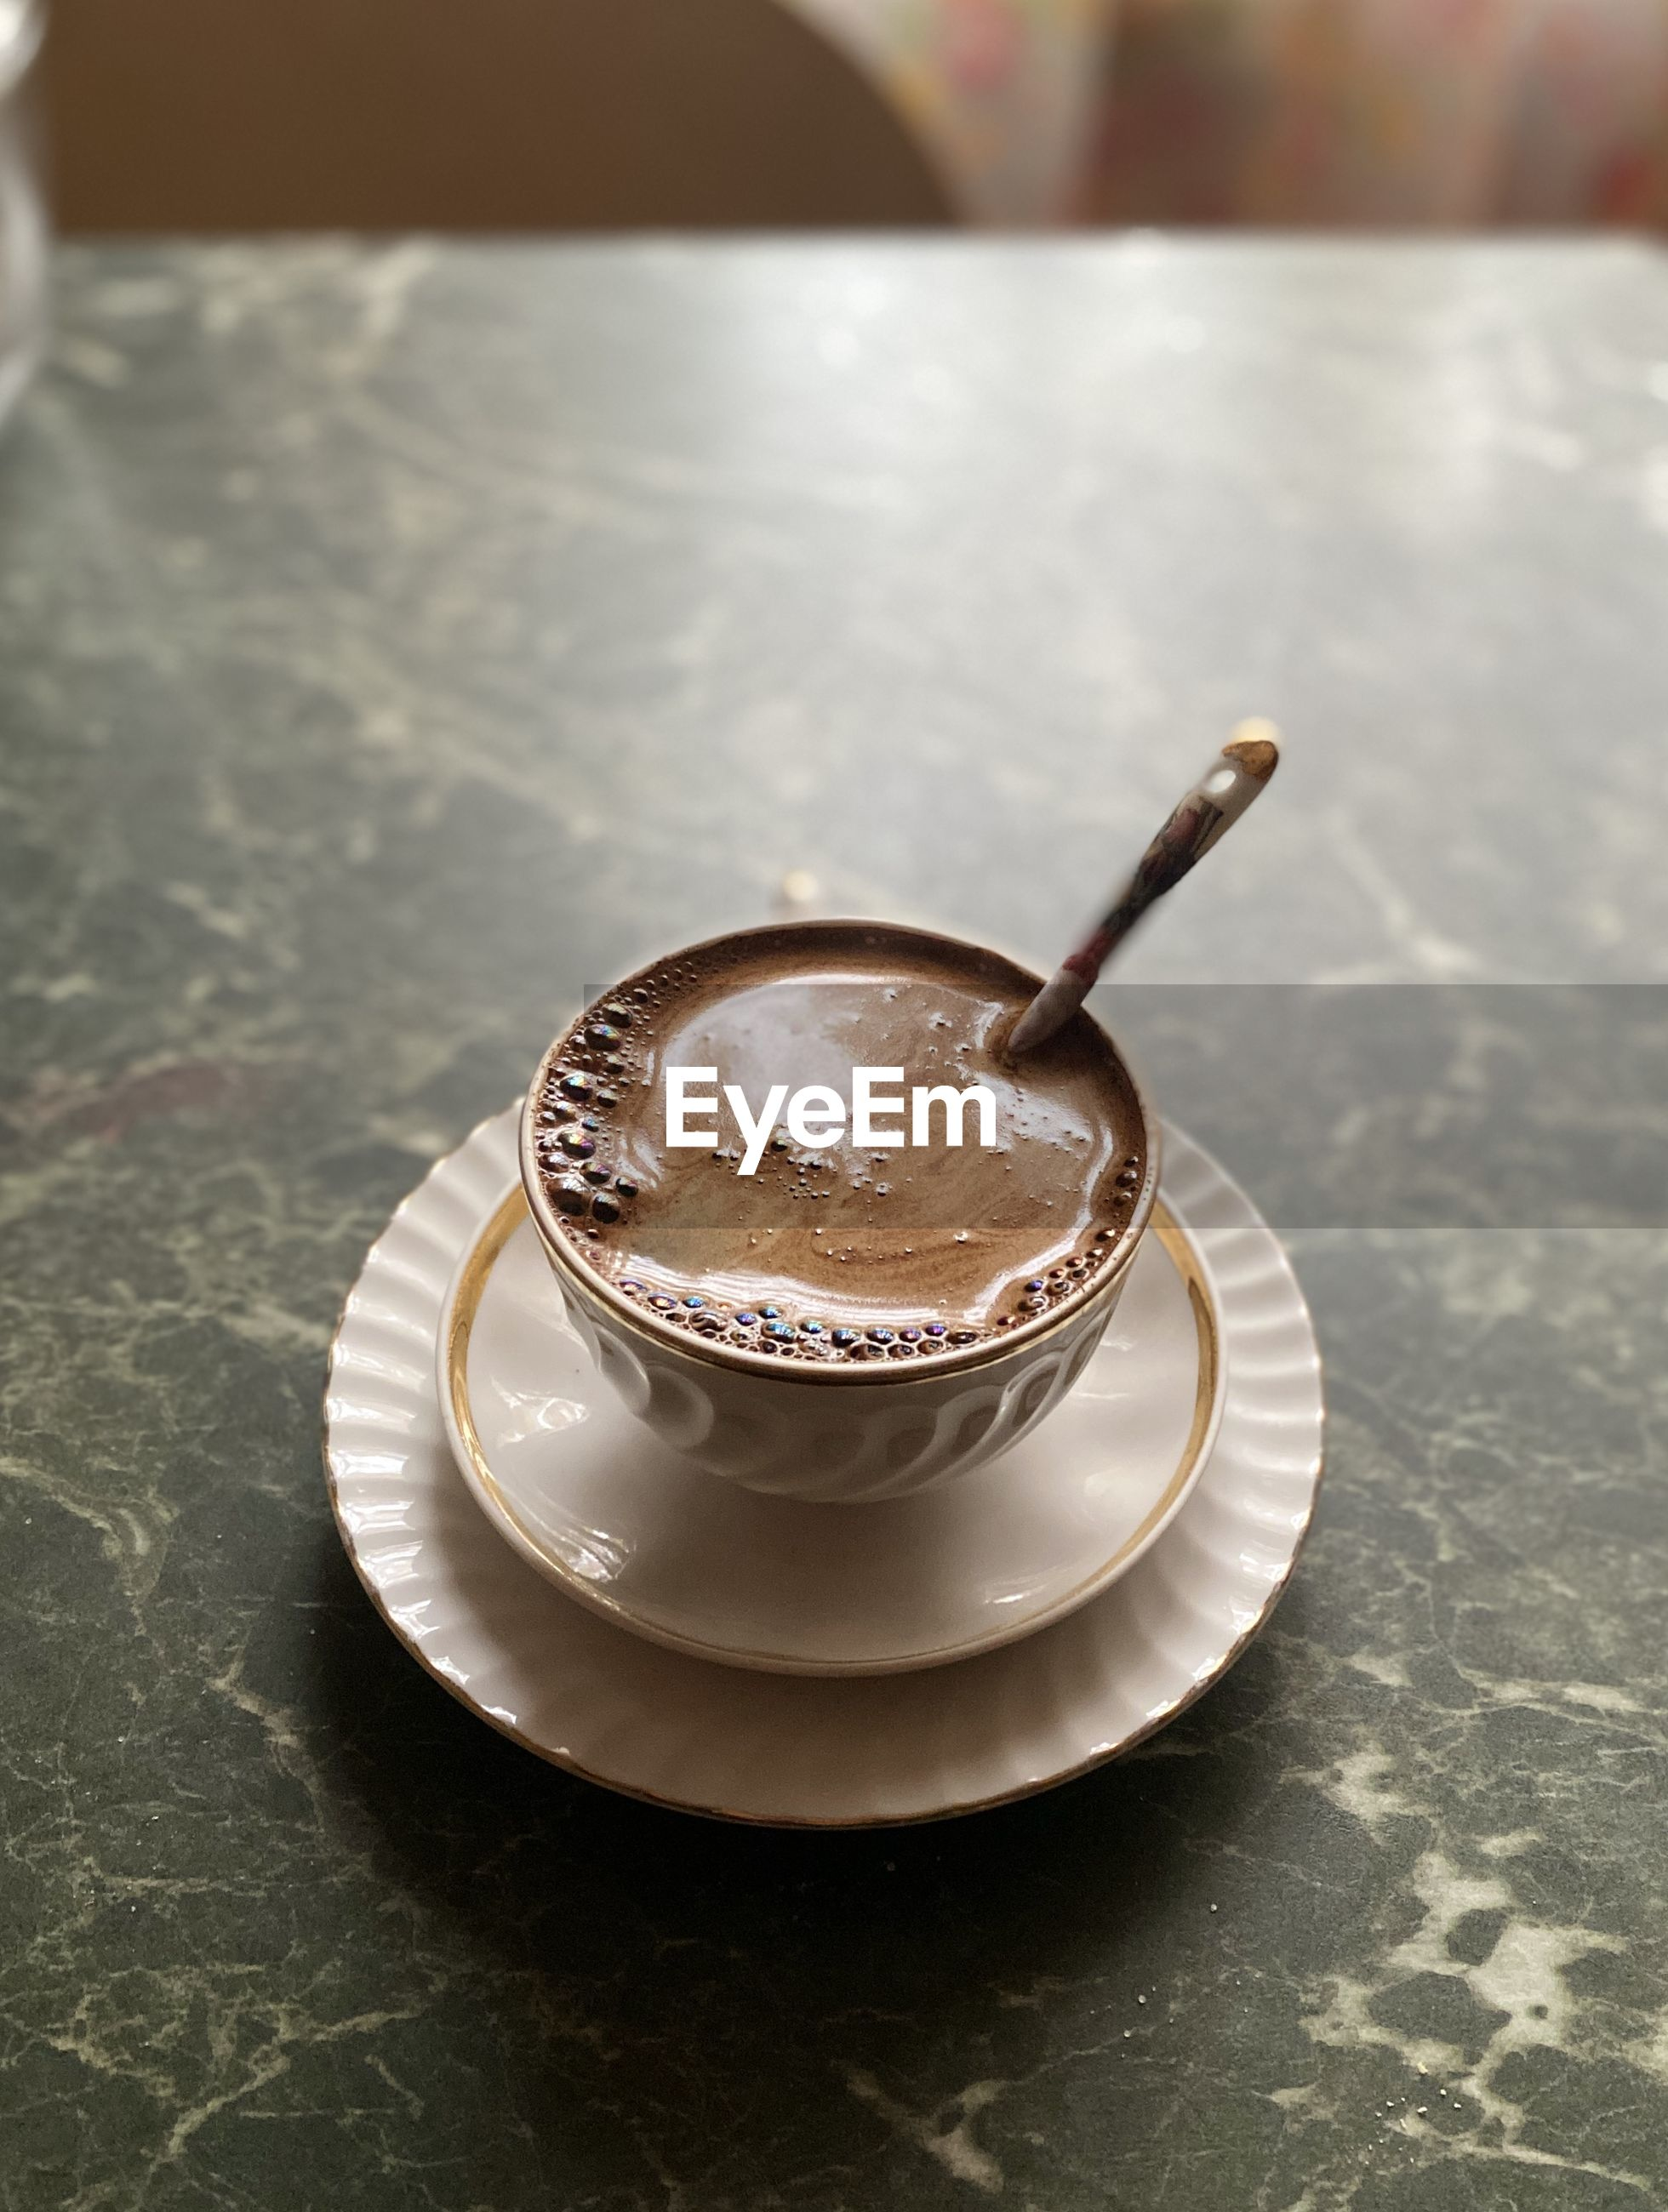 COFFEE CUP ON TABLE WITH SPOON